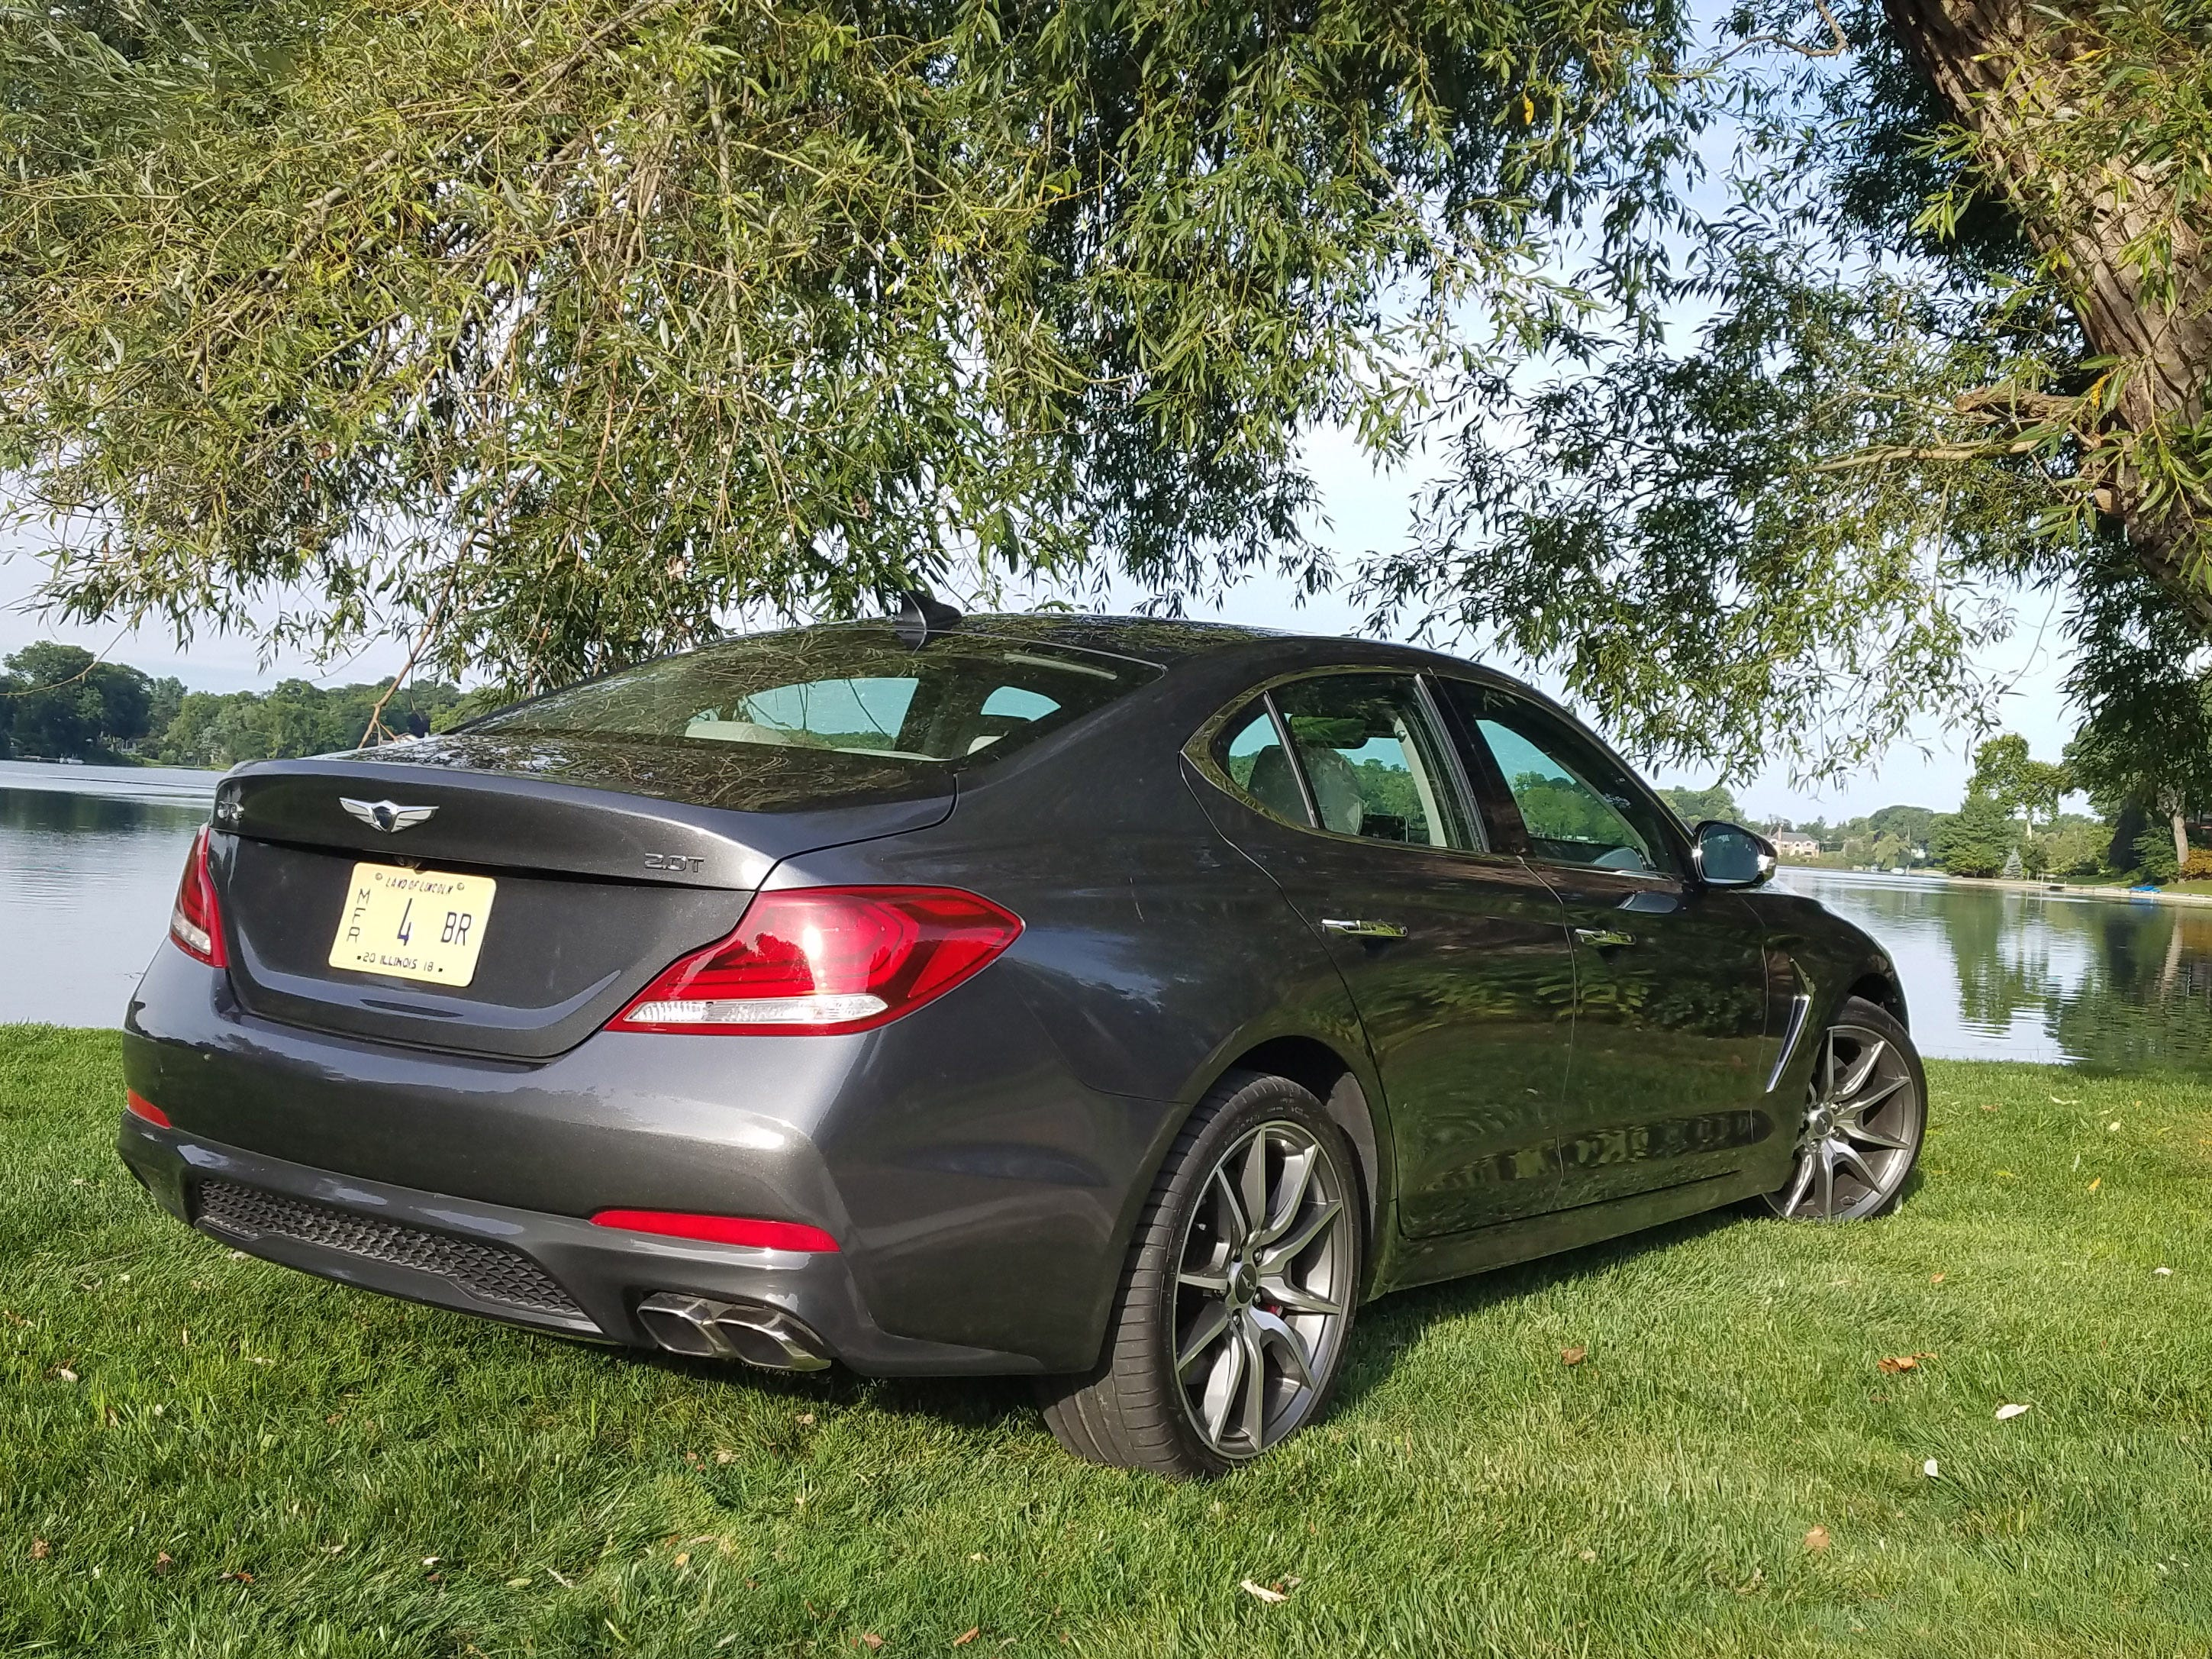 The 2019 Genesis G70 Sport is most distinctive from the rear with its muscular haunches telegraphing the car's athletic abilities.